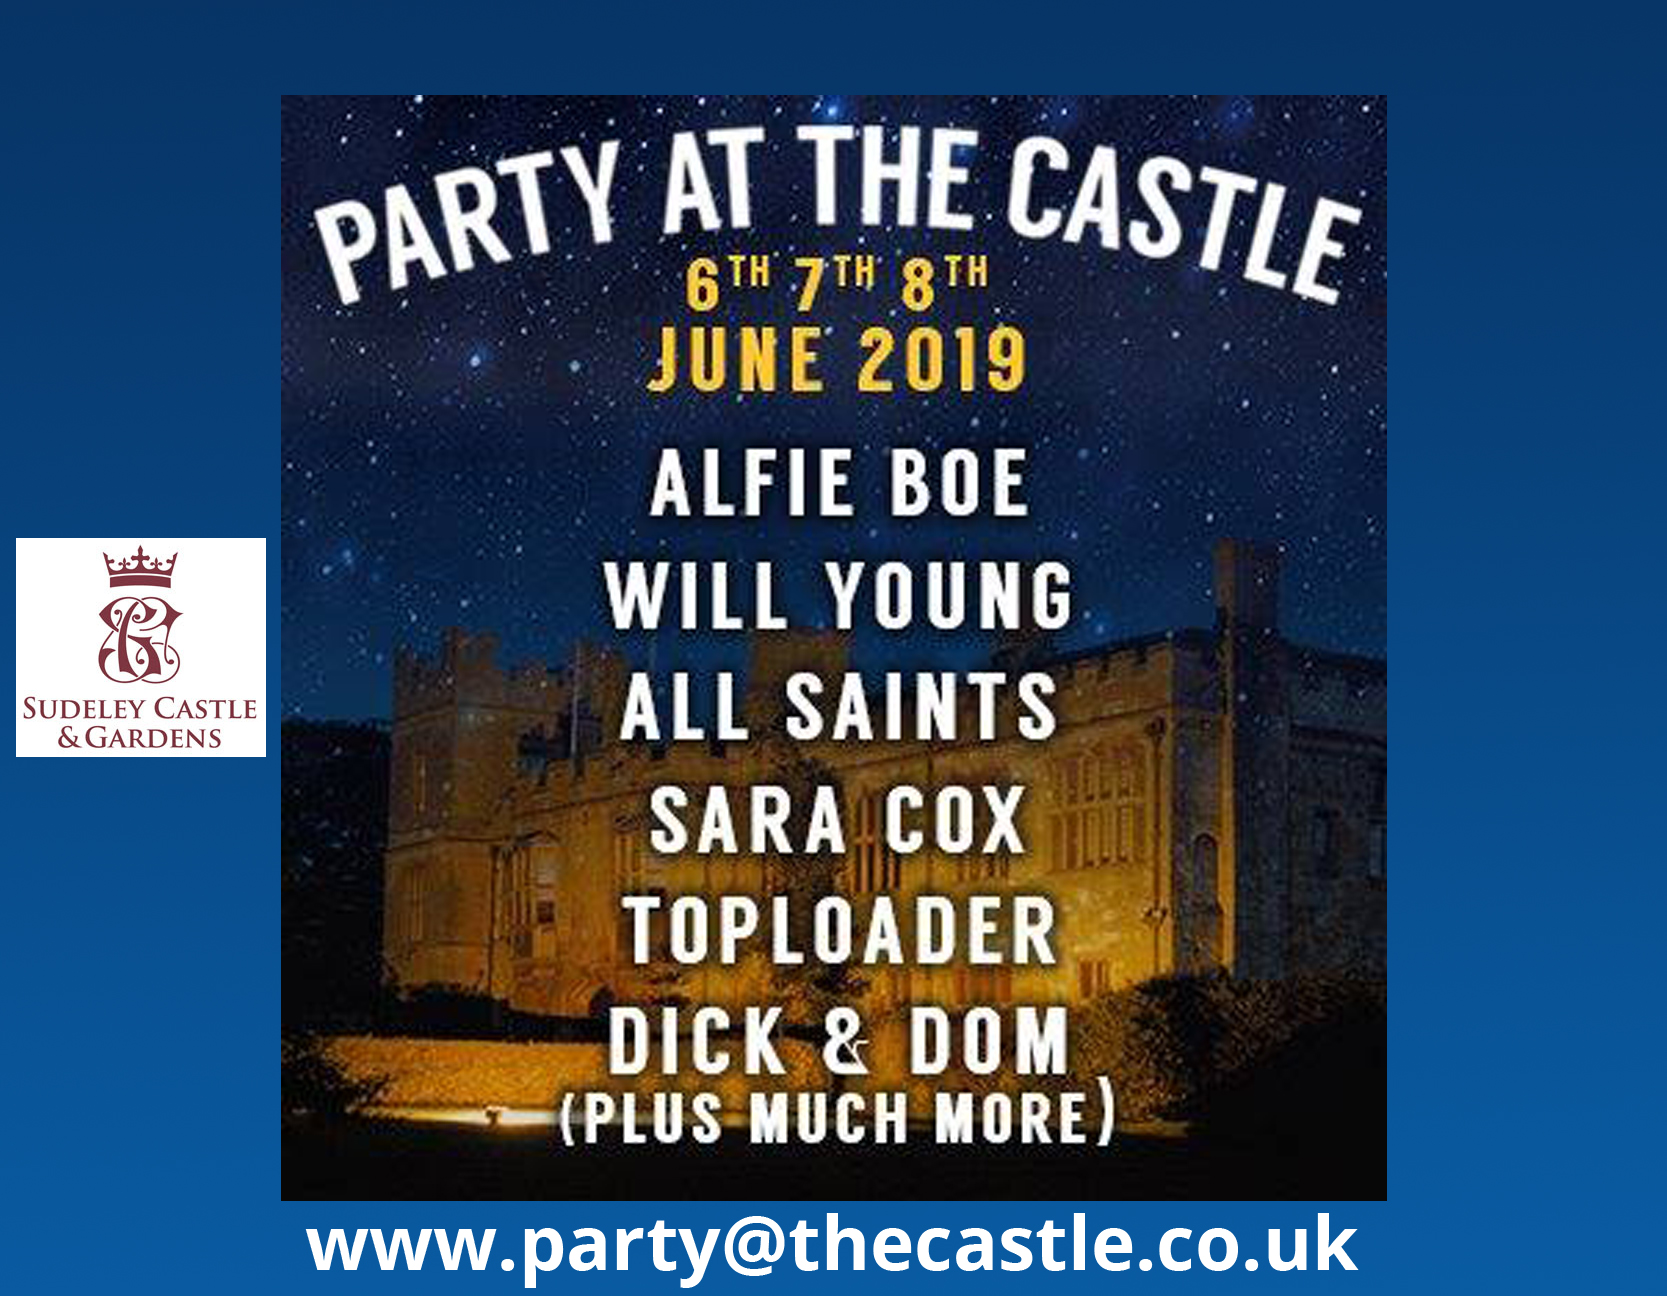 Party at the Castle